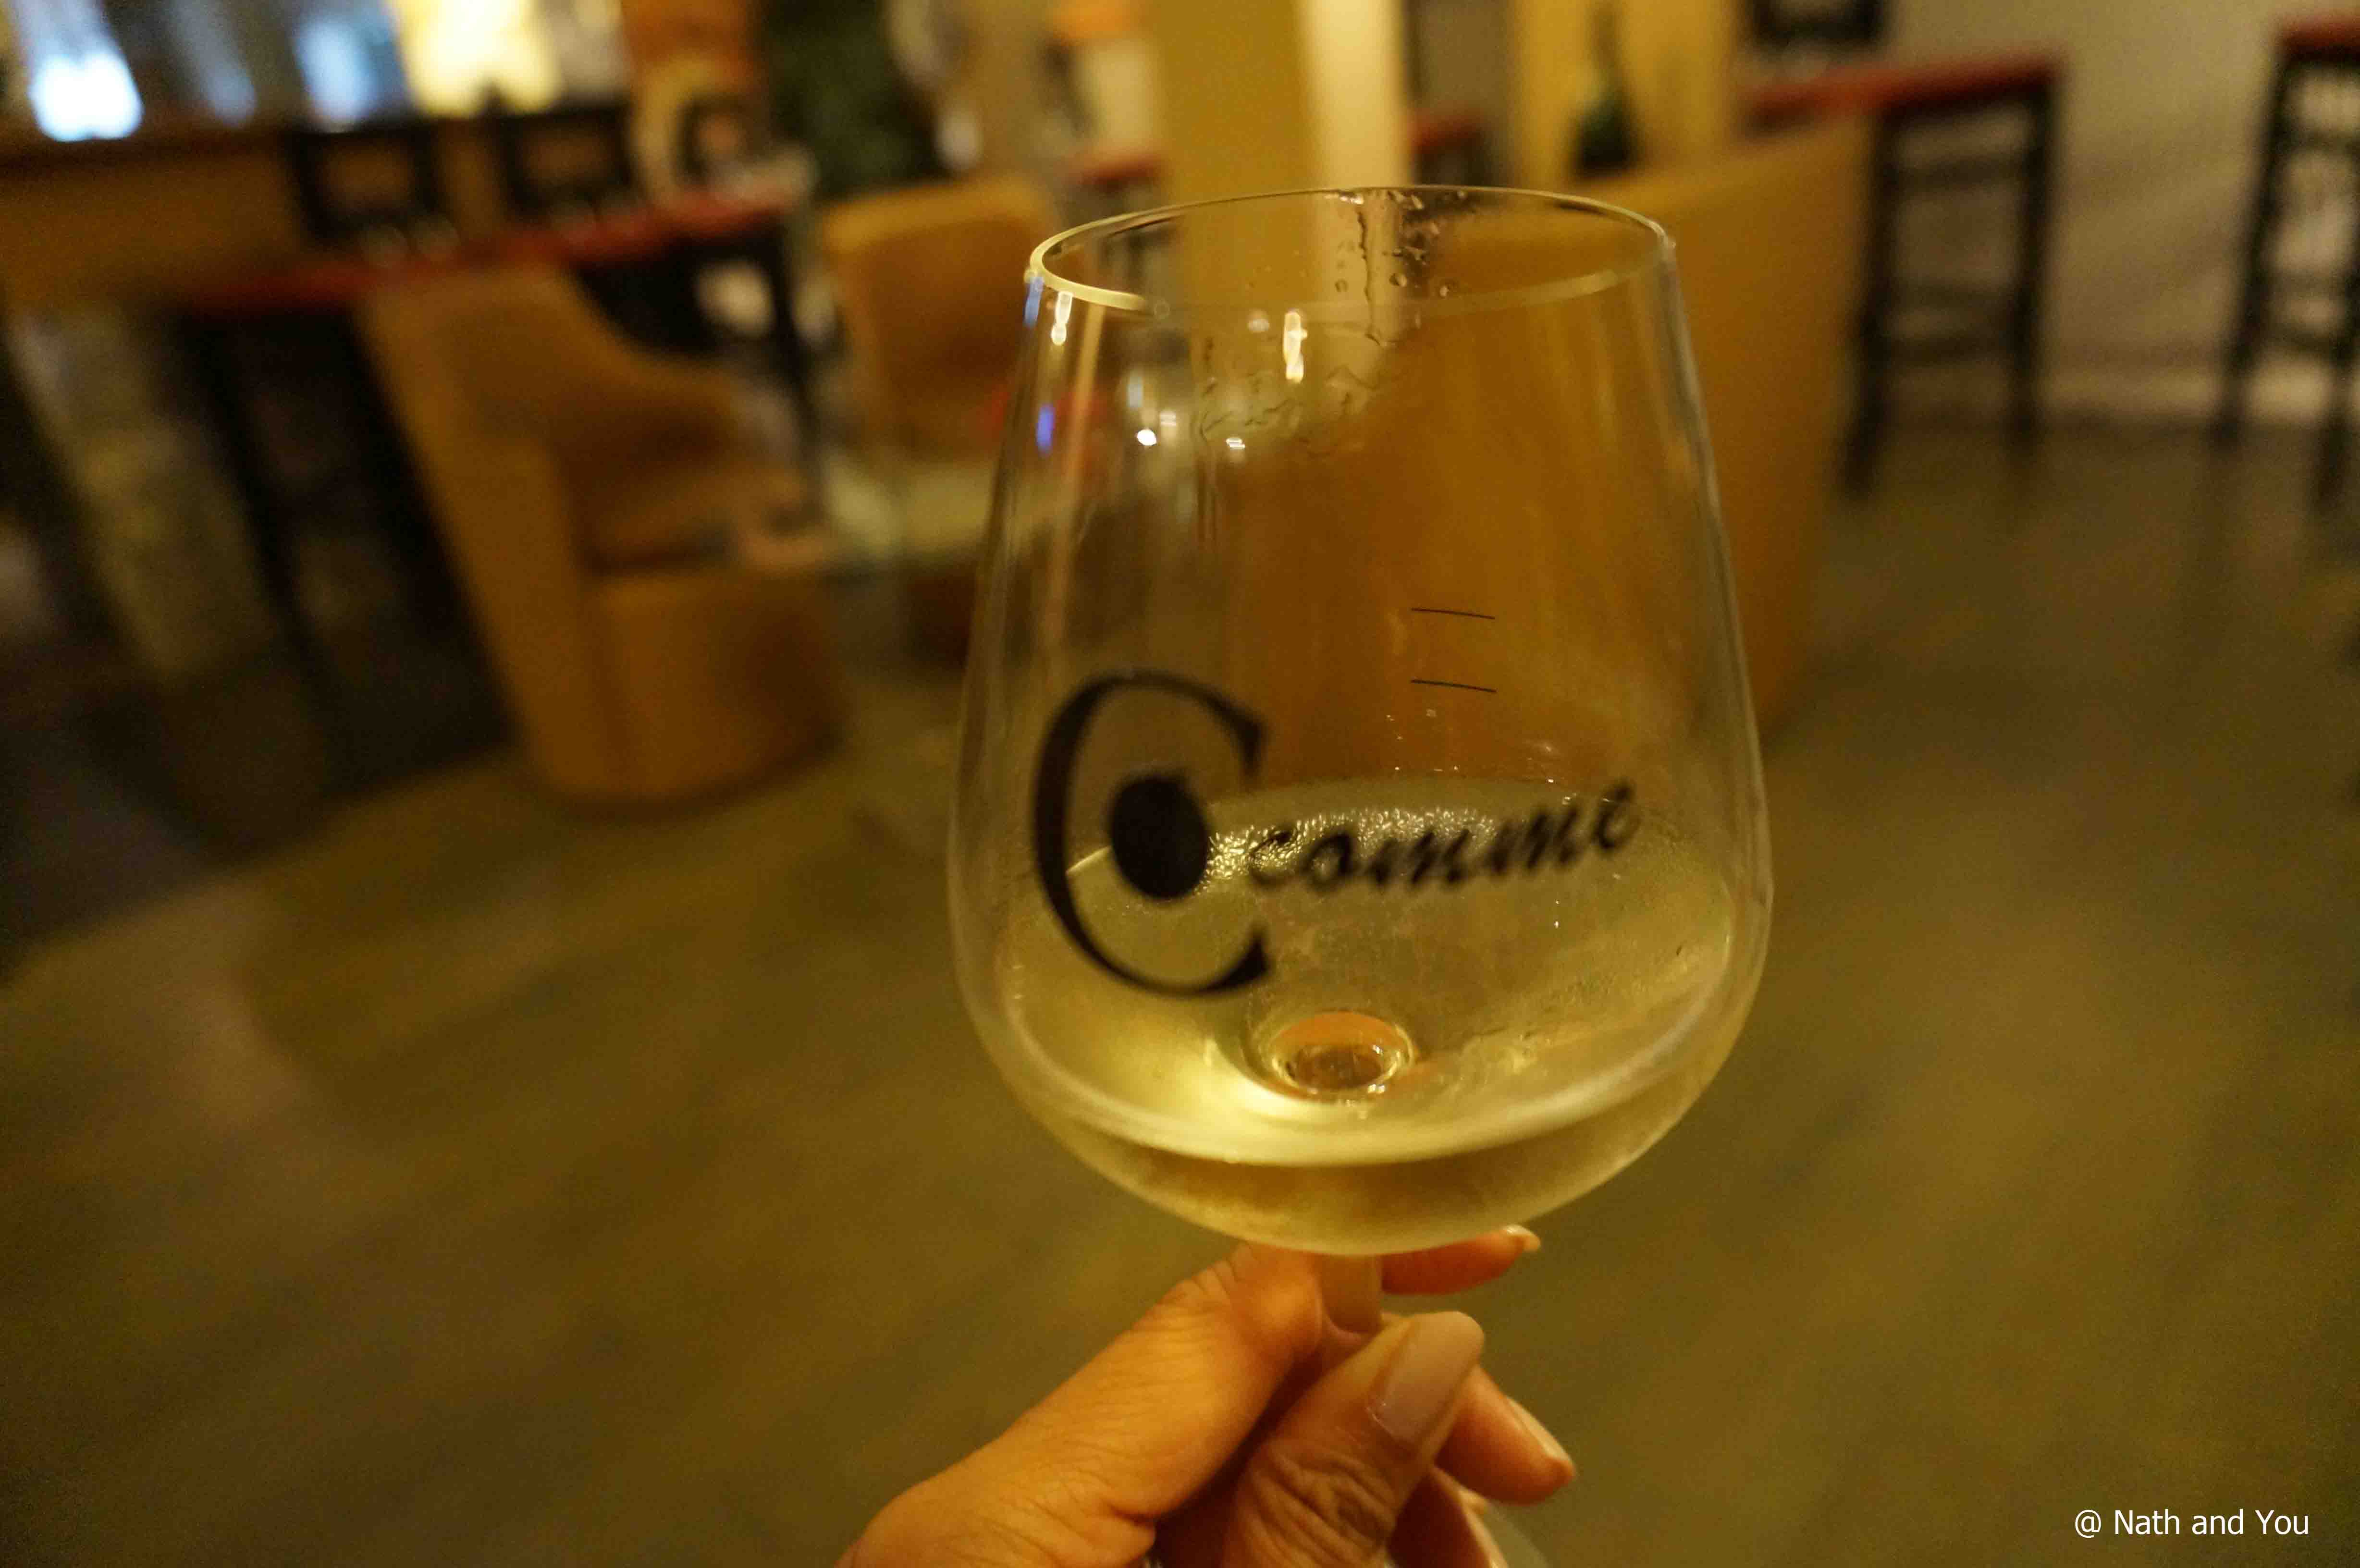 Blanc-de-blanc-Falmet-Collot-C-comme-Champagne-Epernay-Nath-and-you